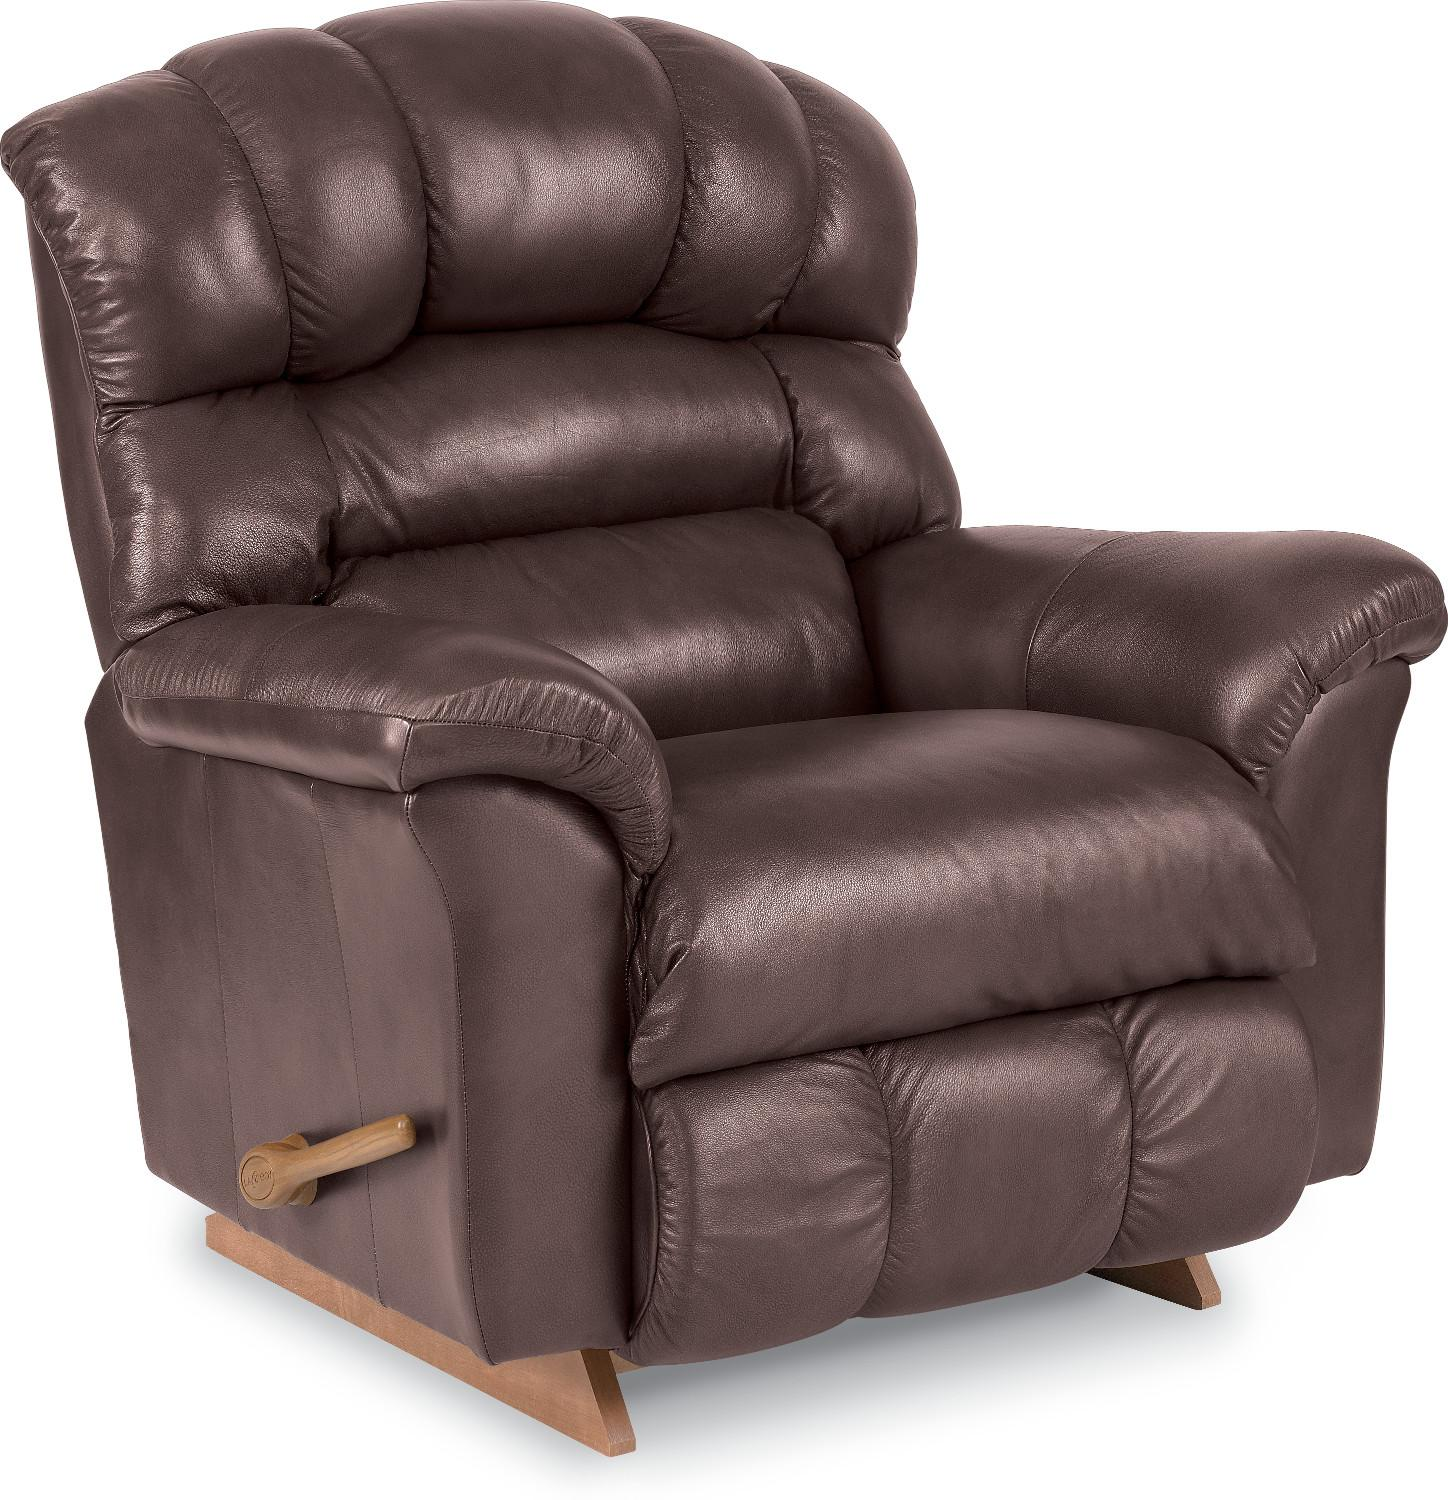 Crandell reclina rocker reclining chair by la z boy wolf furniture - Stylish rocker recliner ...